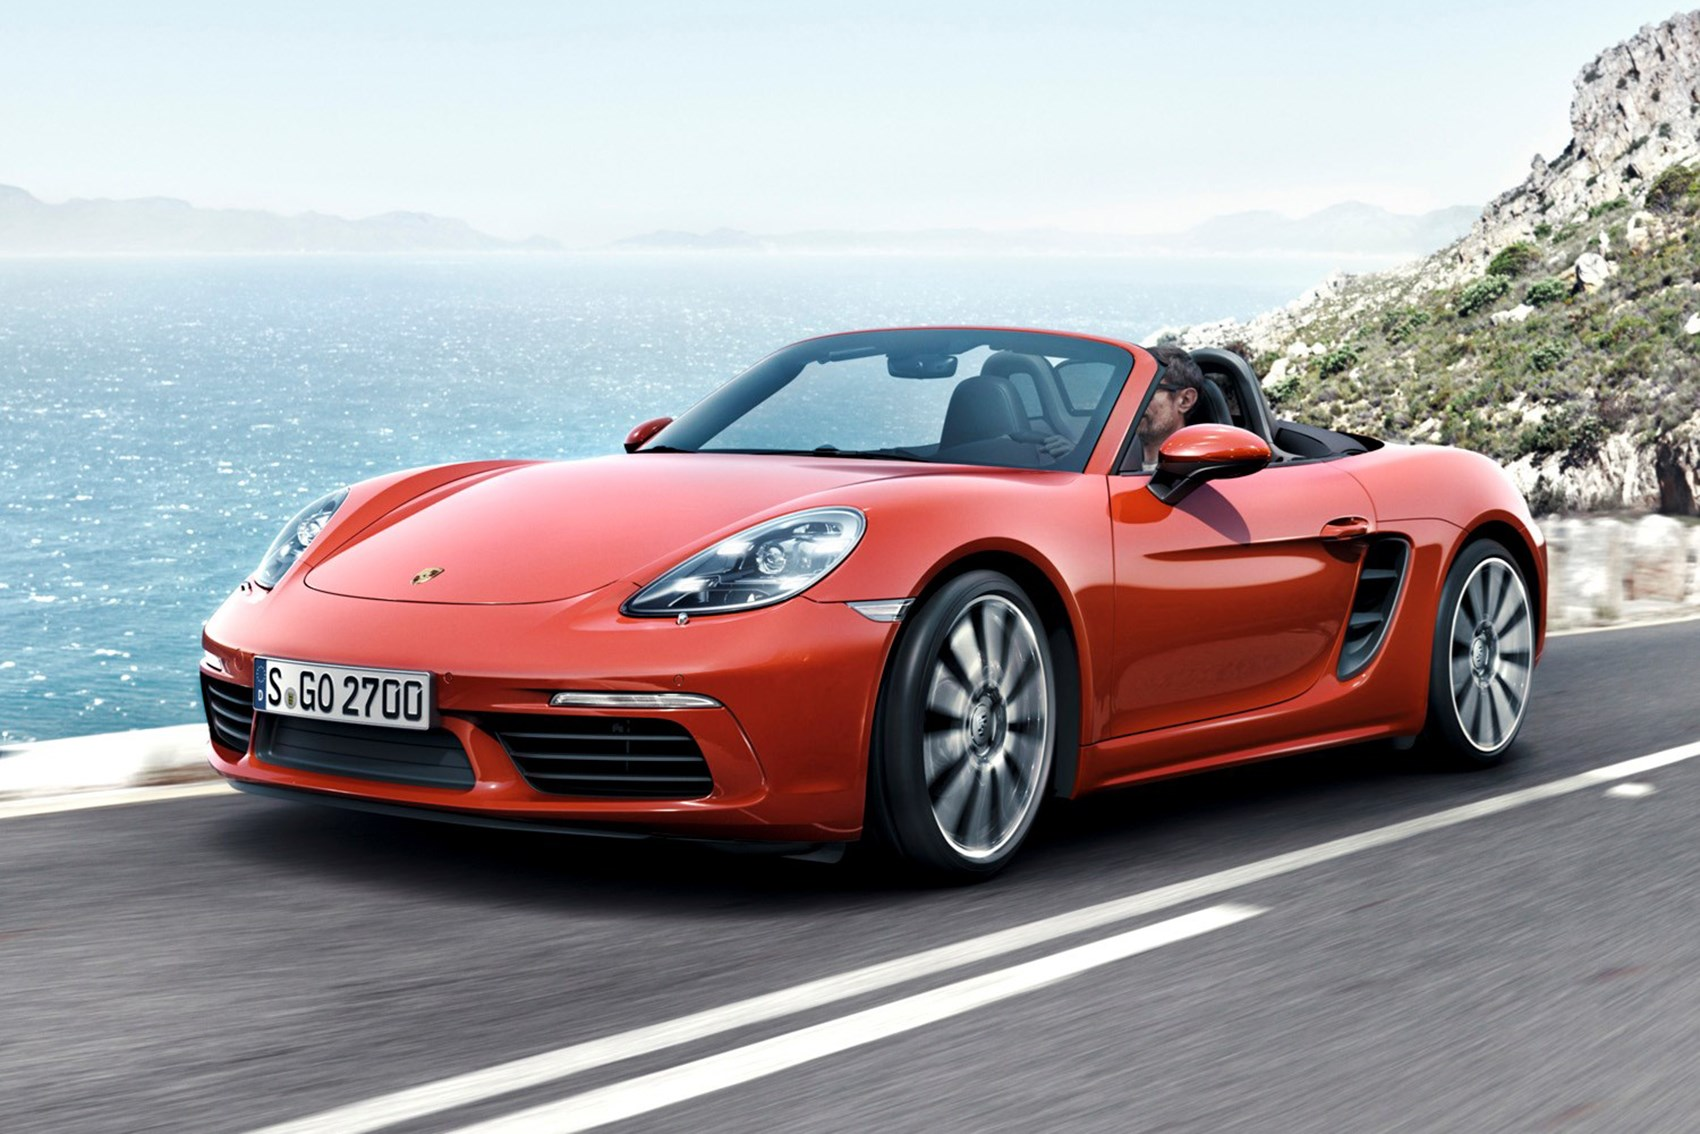 Porsche 718 Boxster - cheap fast cars